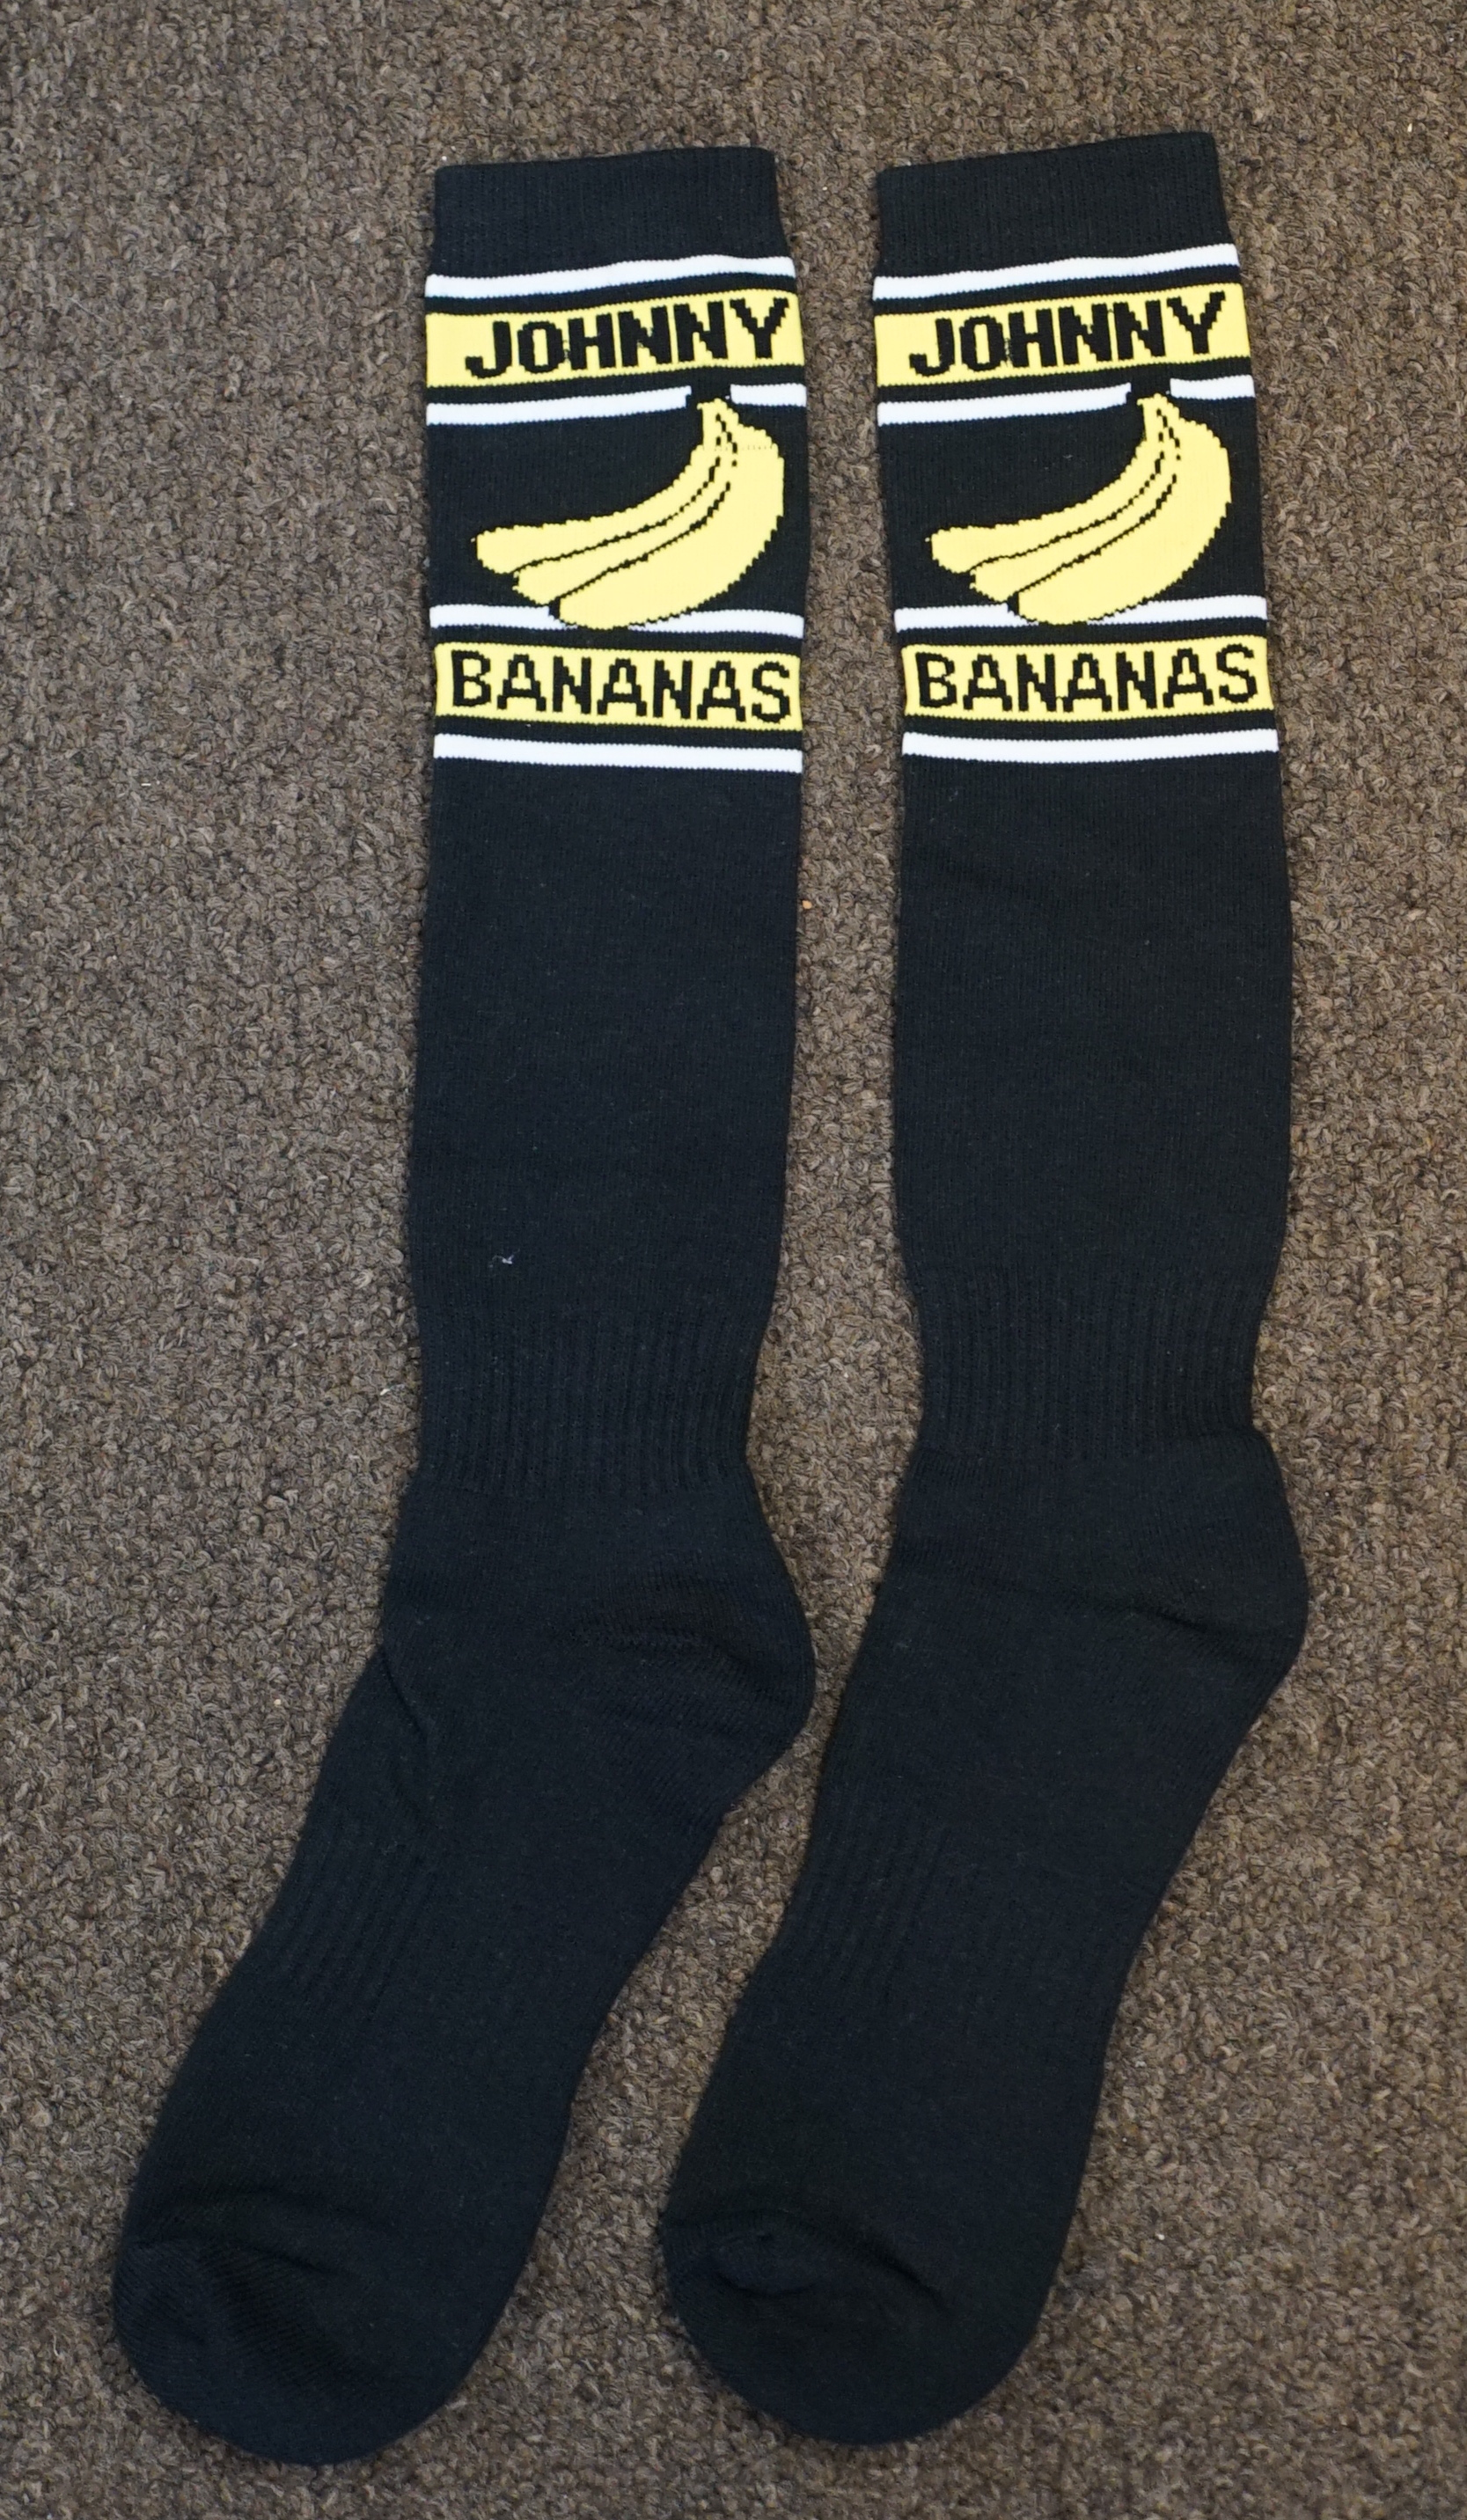 JOHNNY BANANAS Black White and Skin Baseball Uniforms, Socks